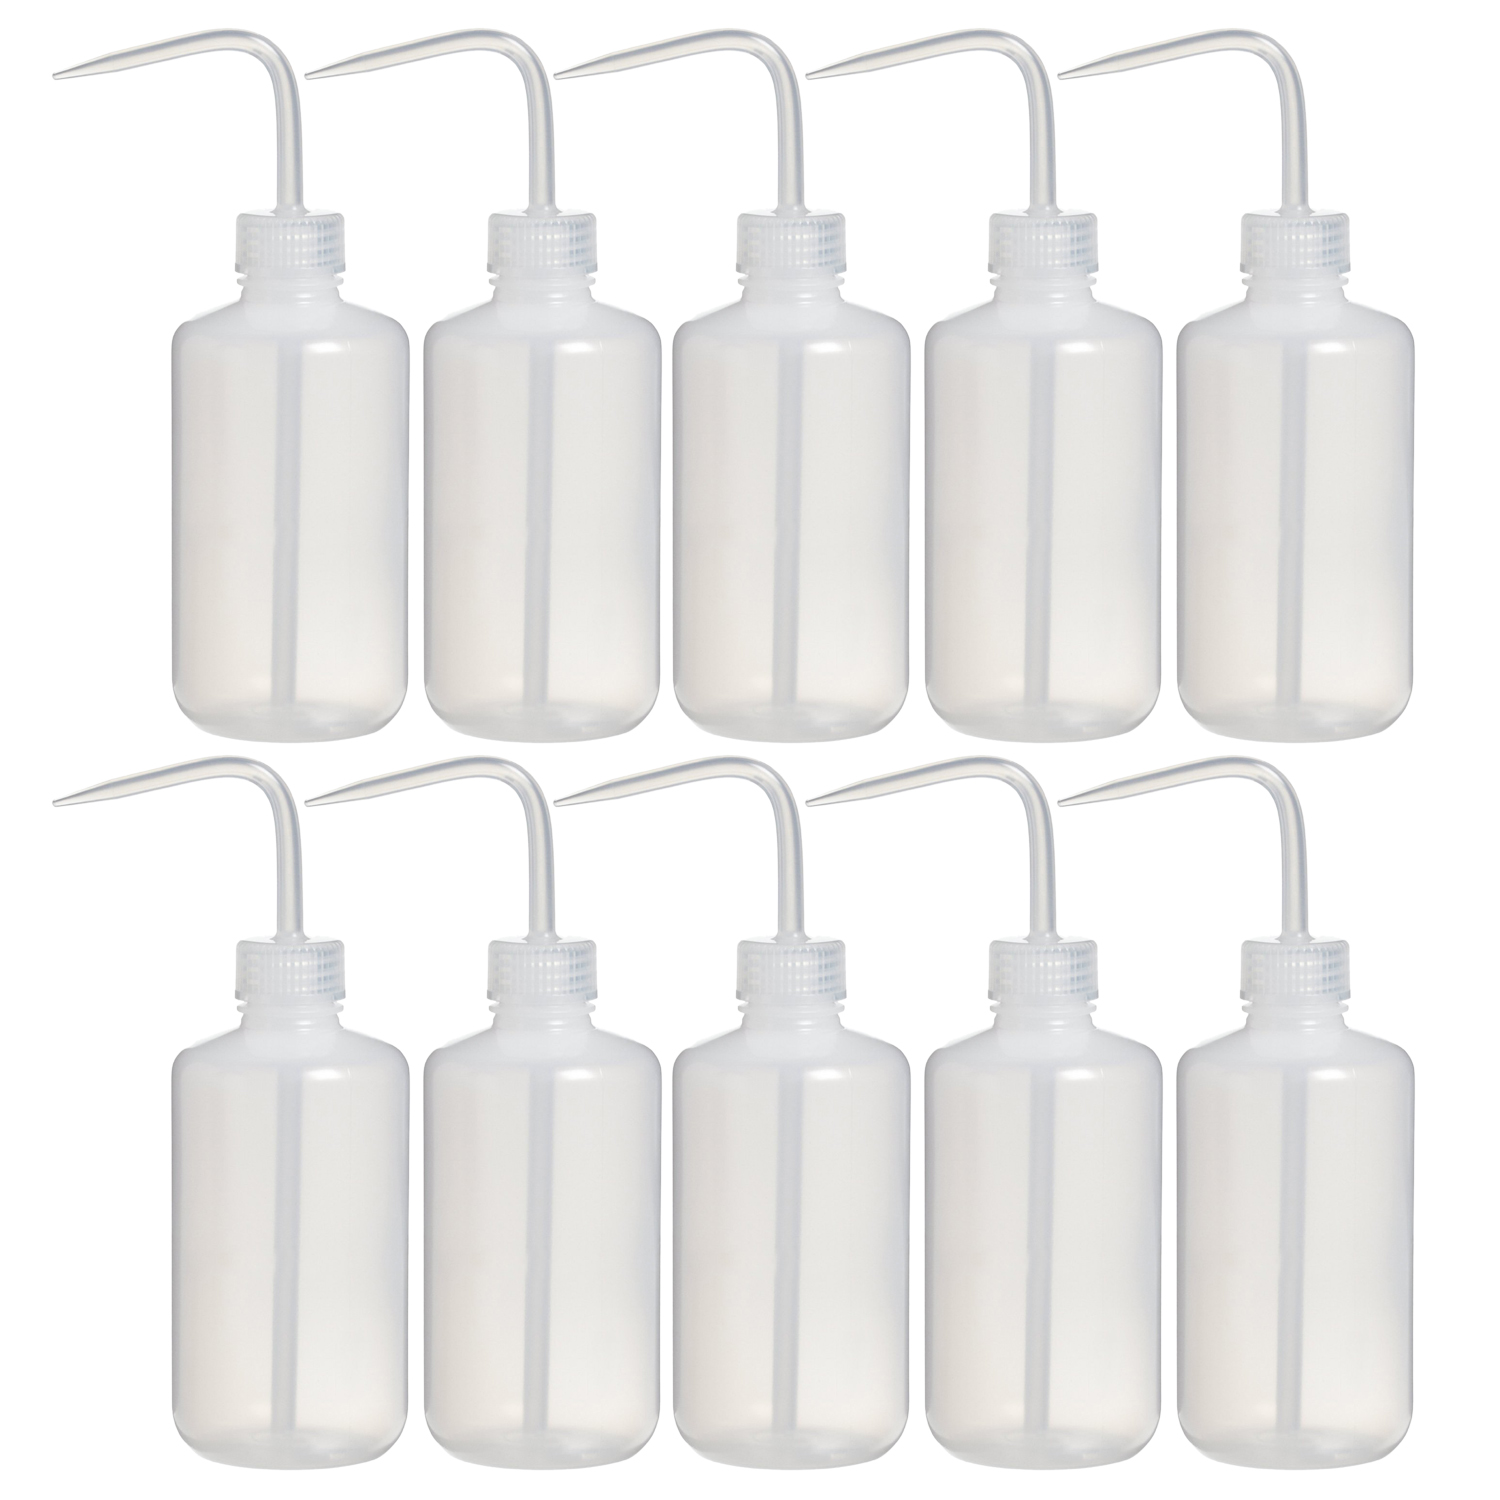 HHFF 10pcs 250ml Tattoo Diffuser Green Soap Water Wash Squeeze Bottle Lab Non-Spray